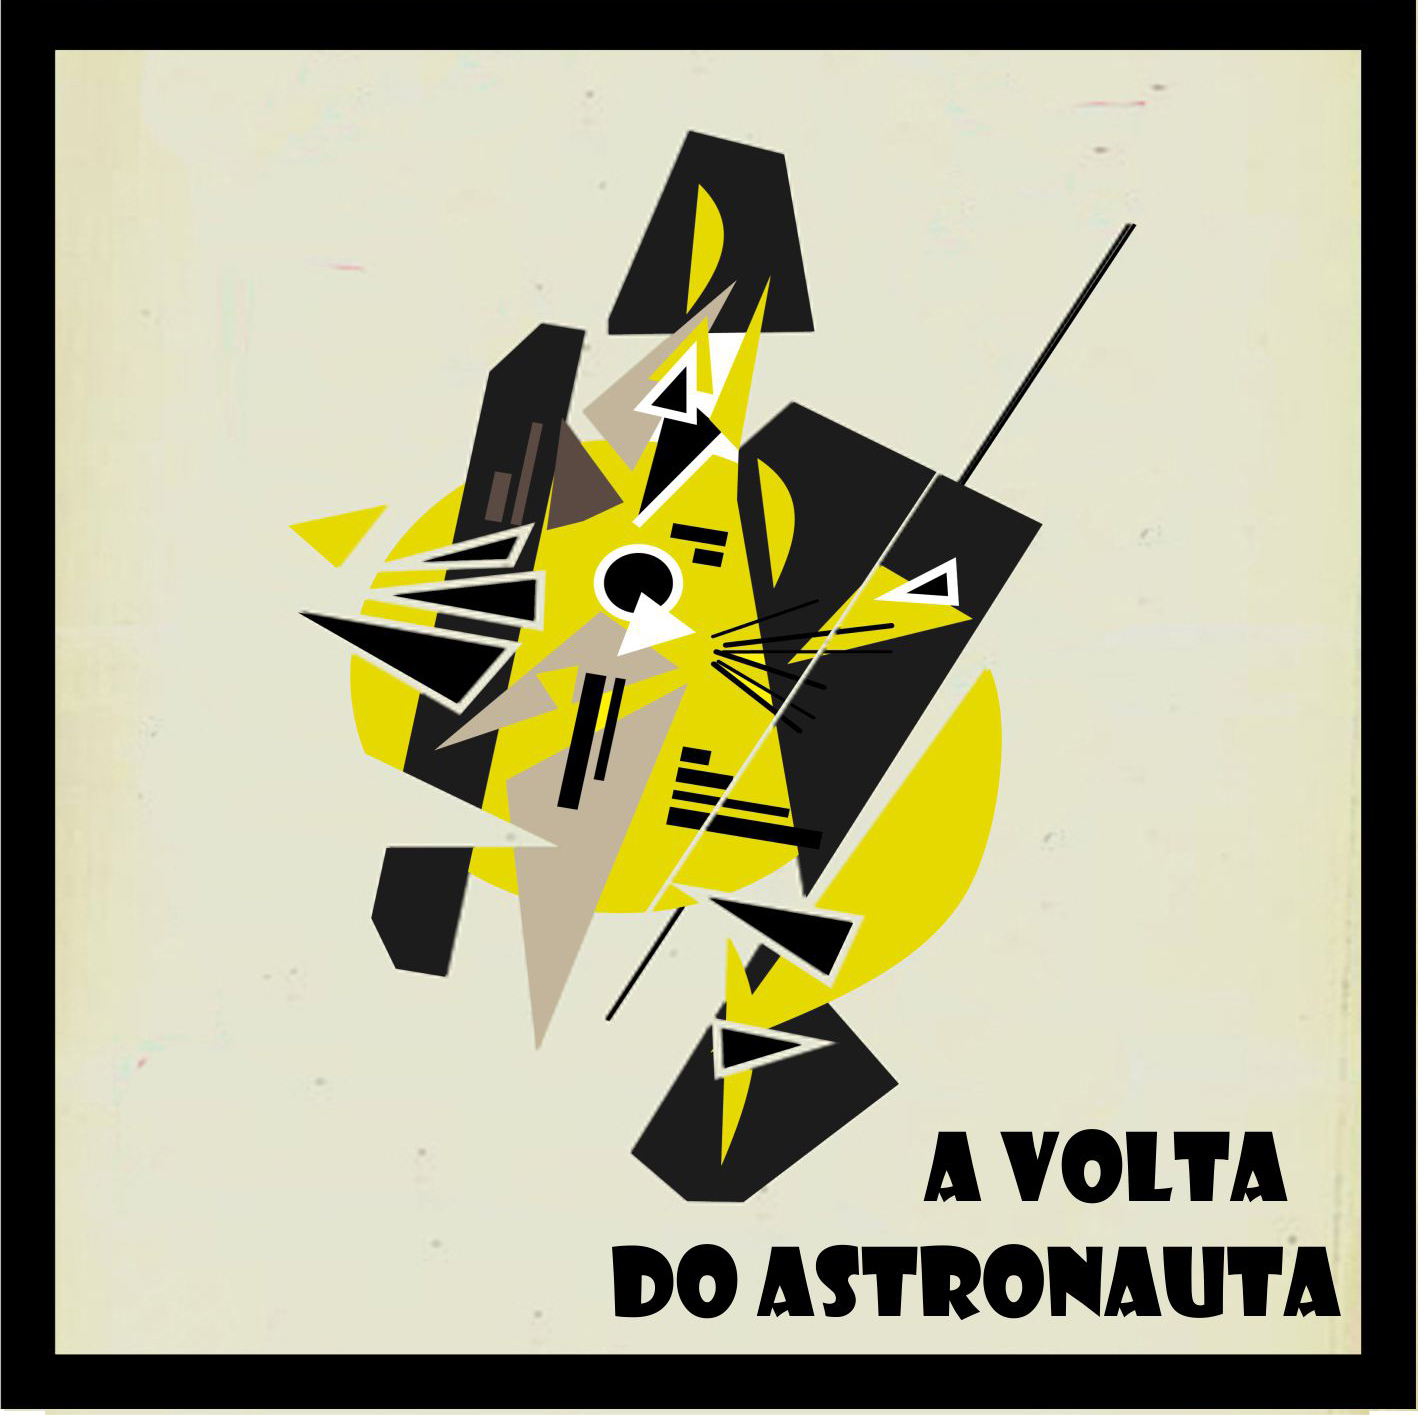 A volta do Astronauta